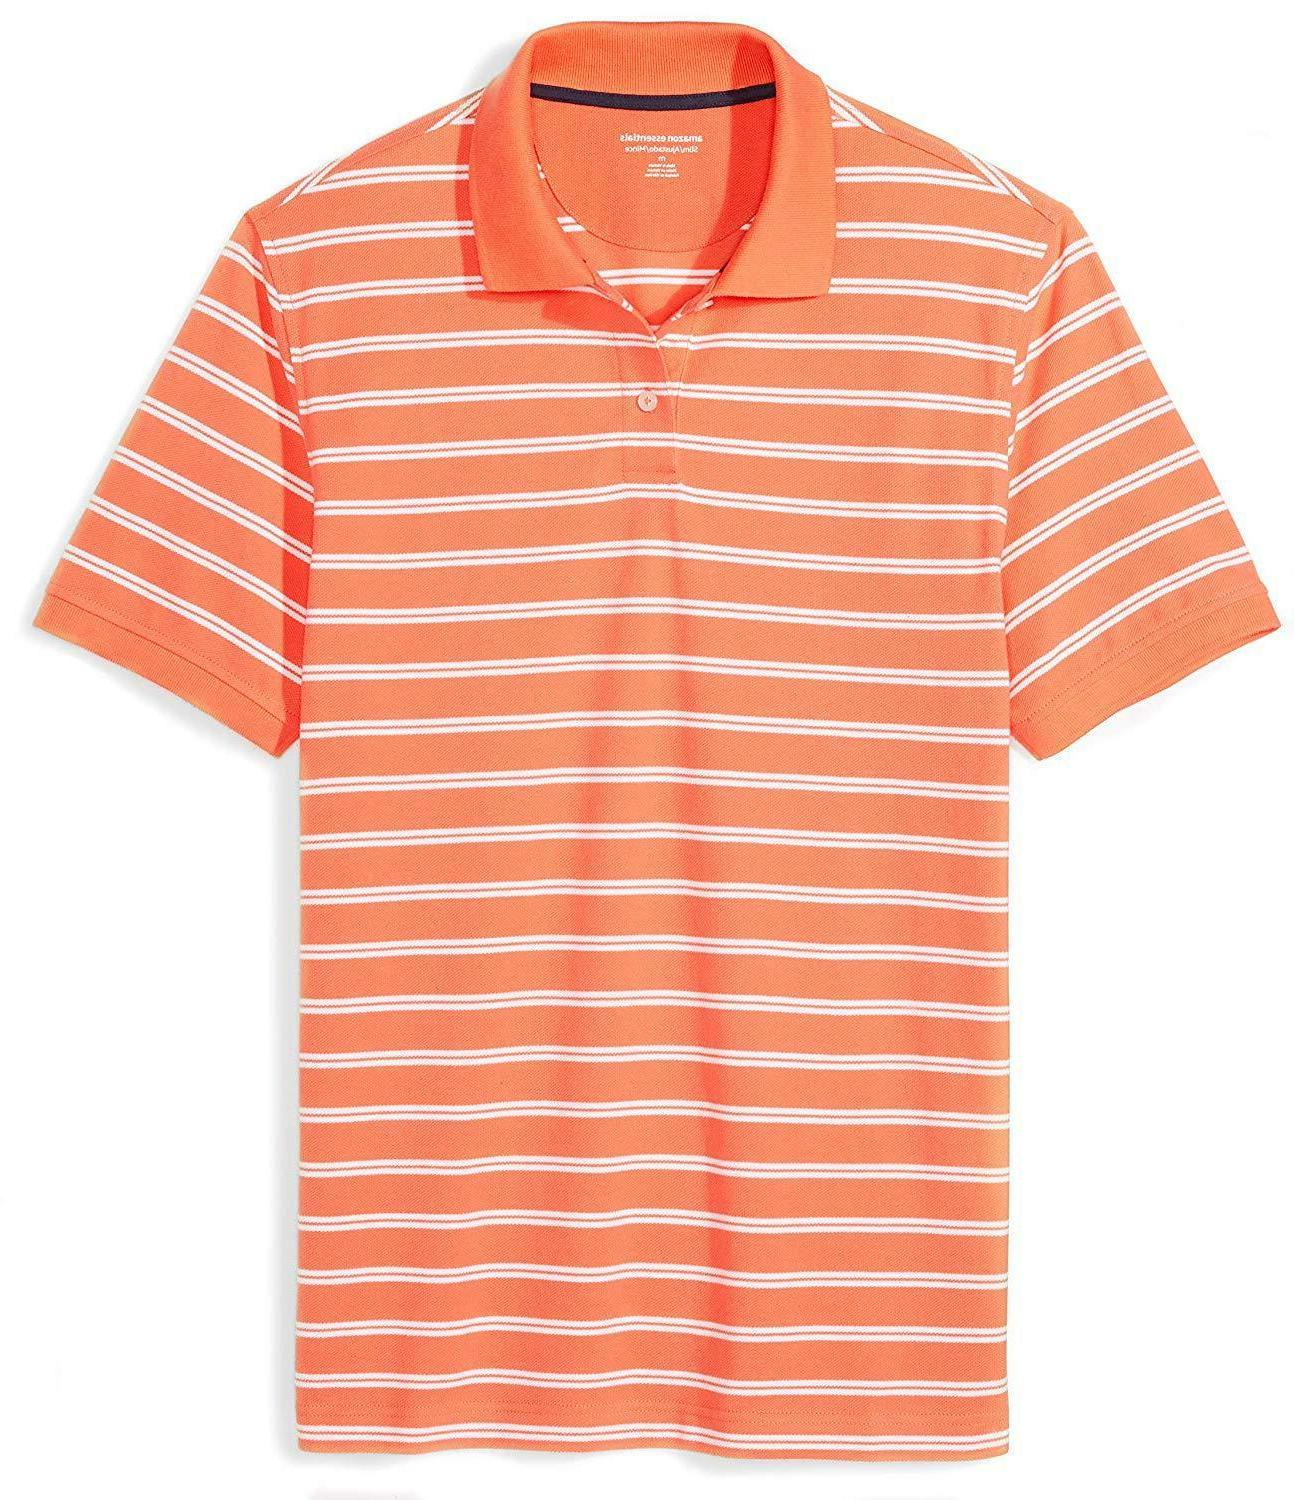 Amazon Men's Slim-Fit Striped Pique Shirt